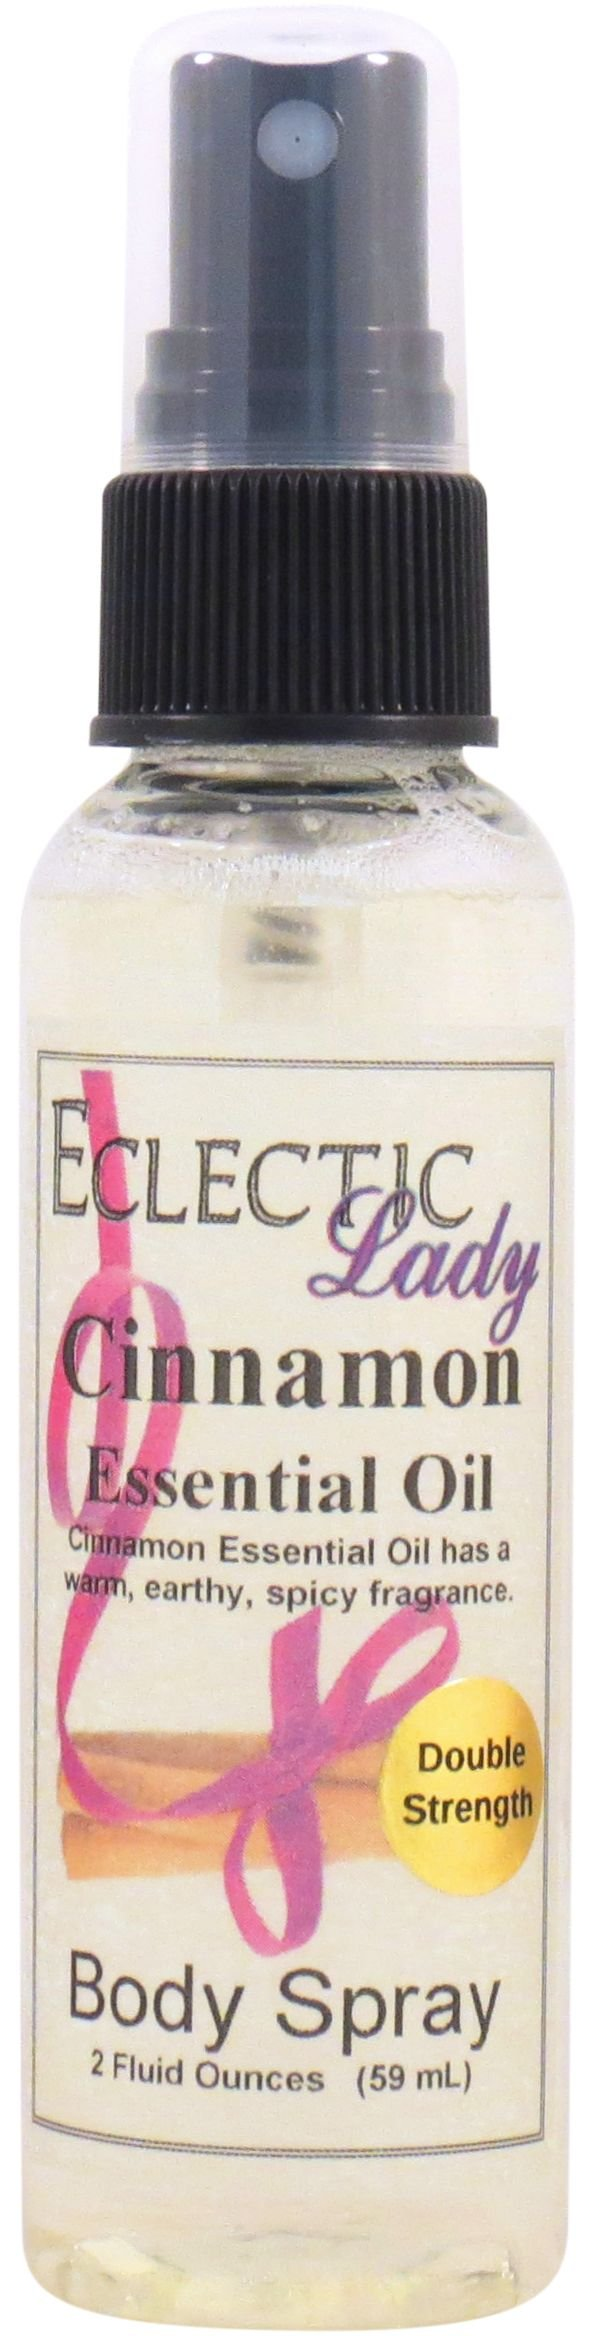 Cinnamon Essential Oil Body Spray (Double Strength), 2 ounces